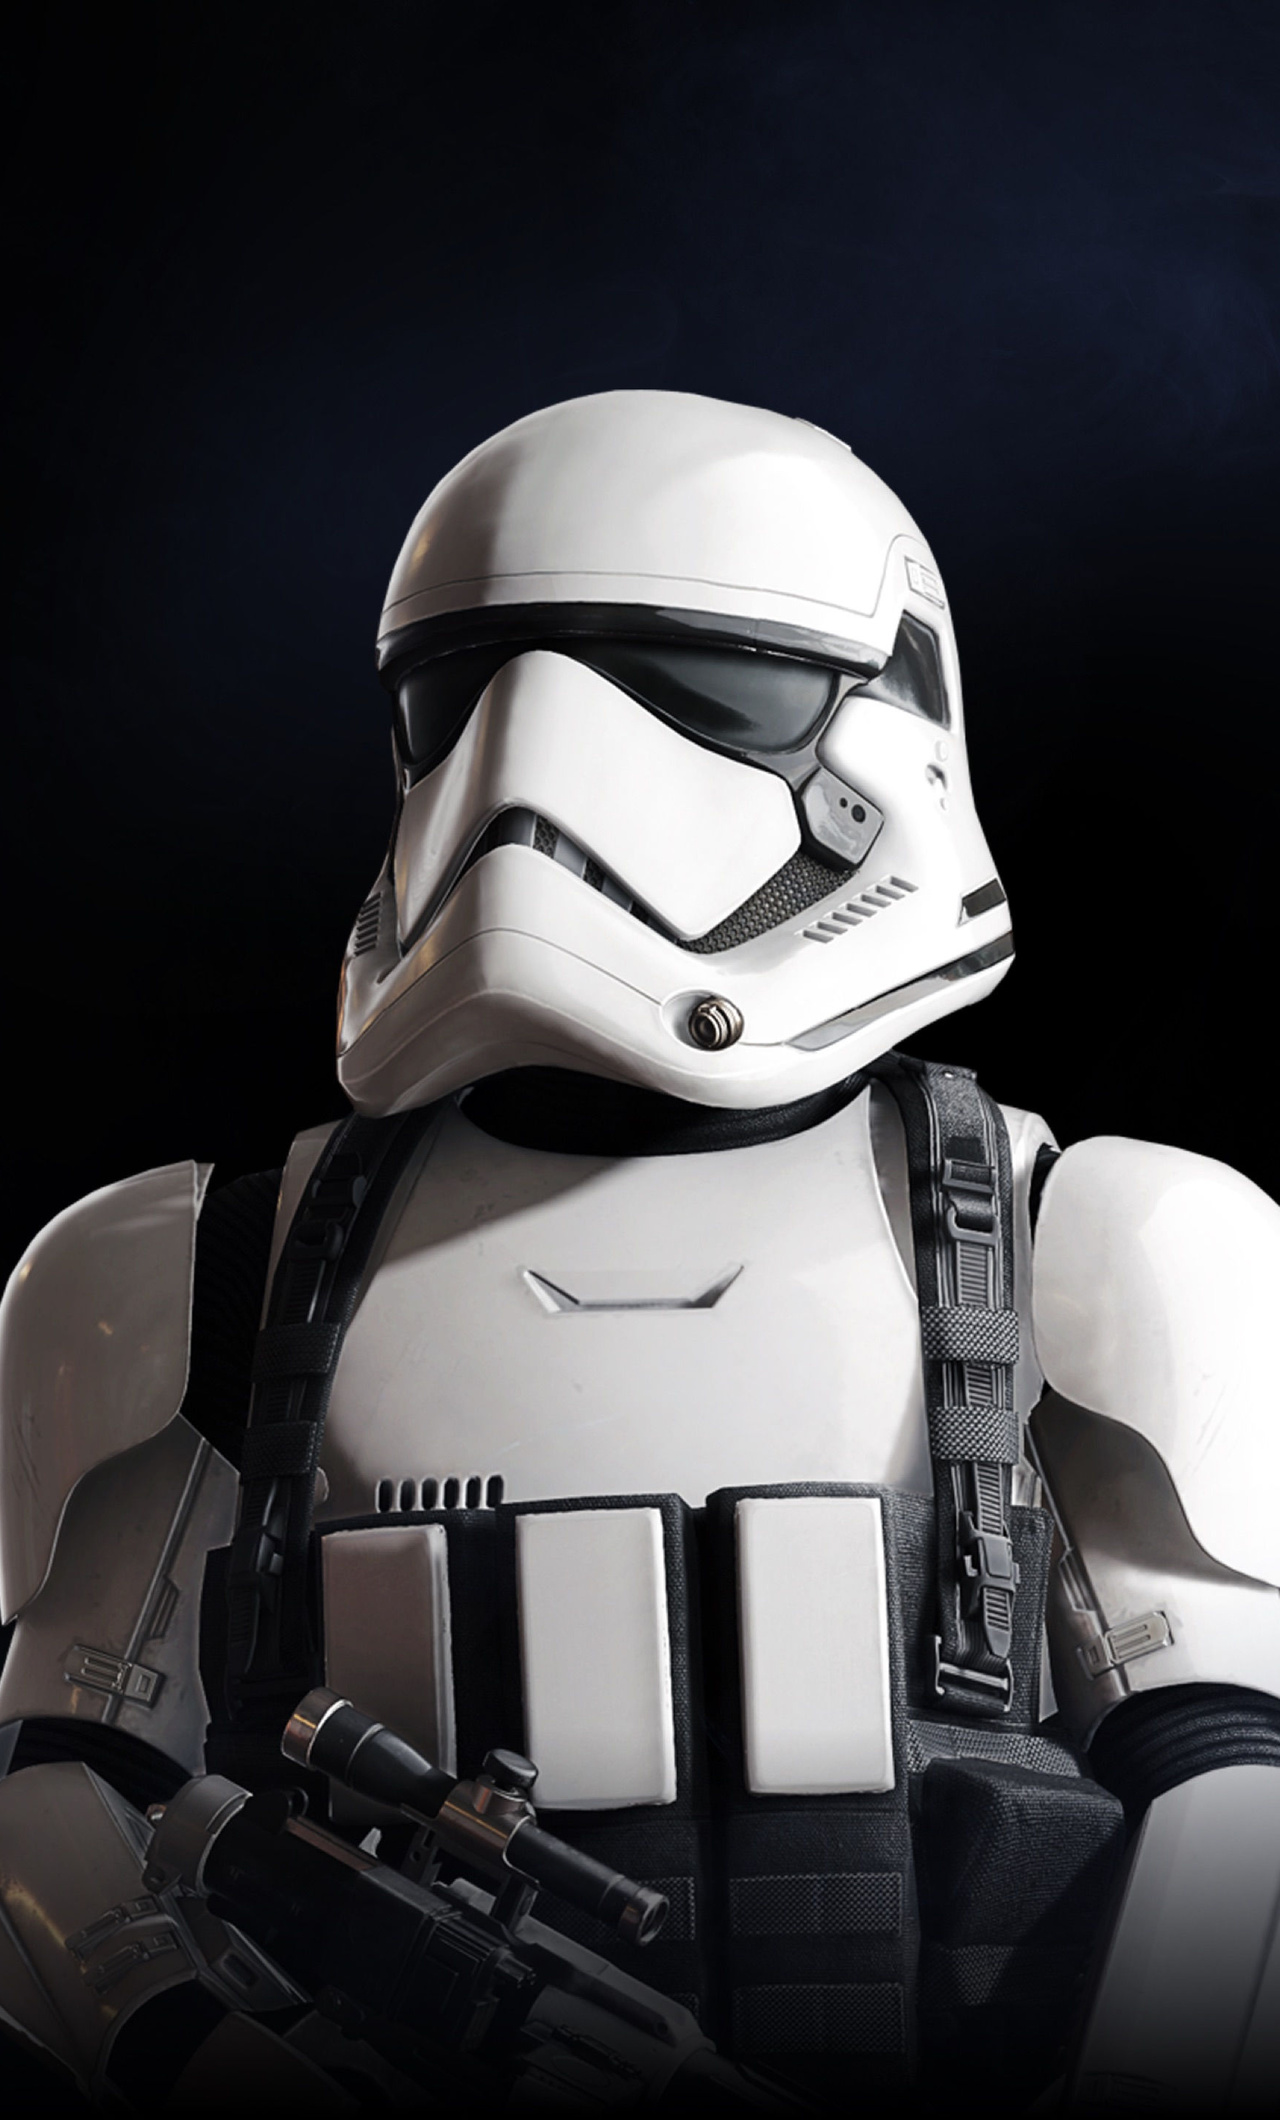 Stormtrooper Star Wars Battlefront 2 5k Sz